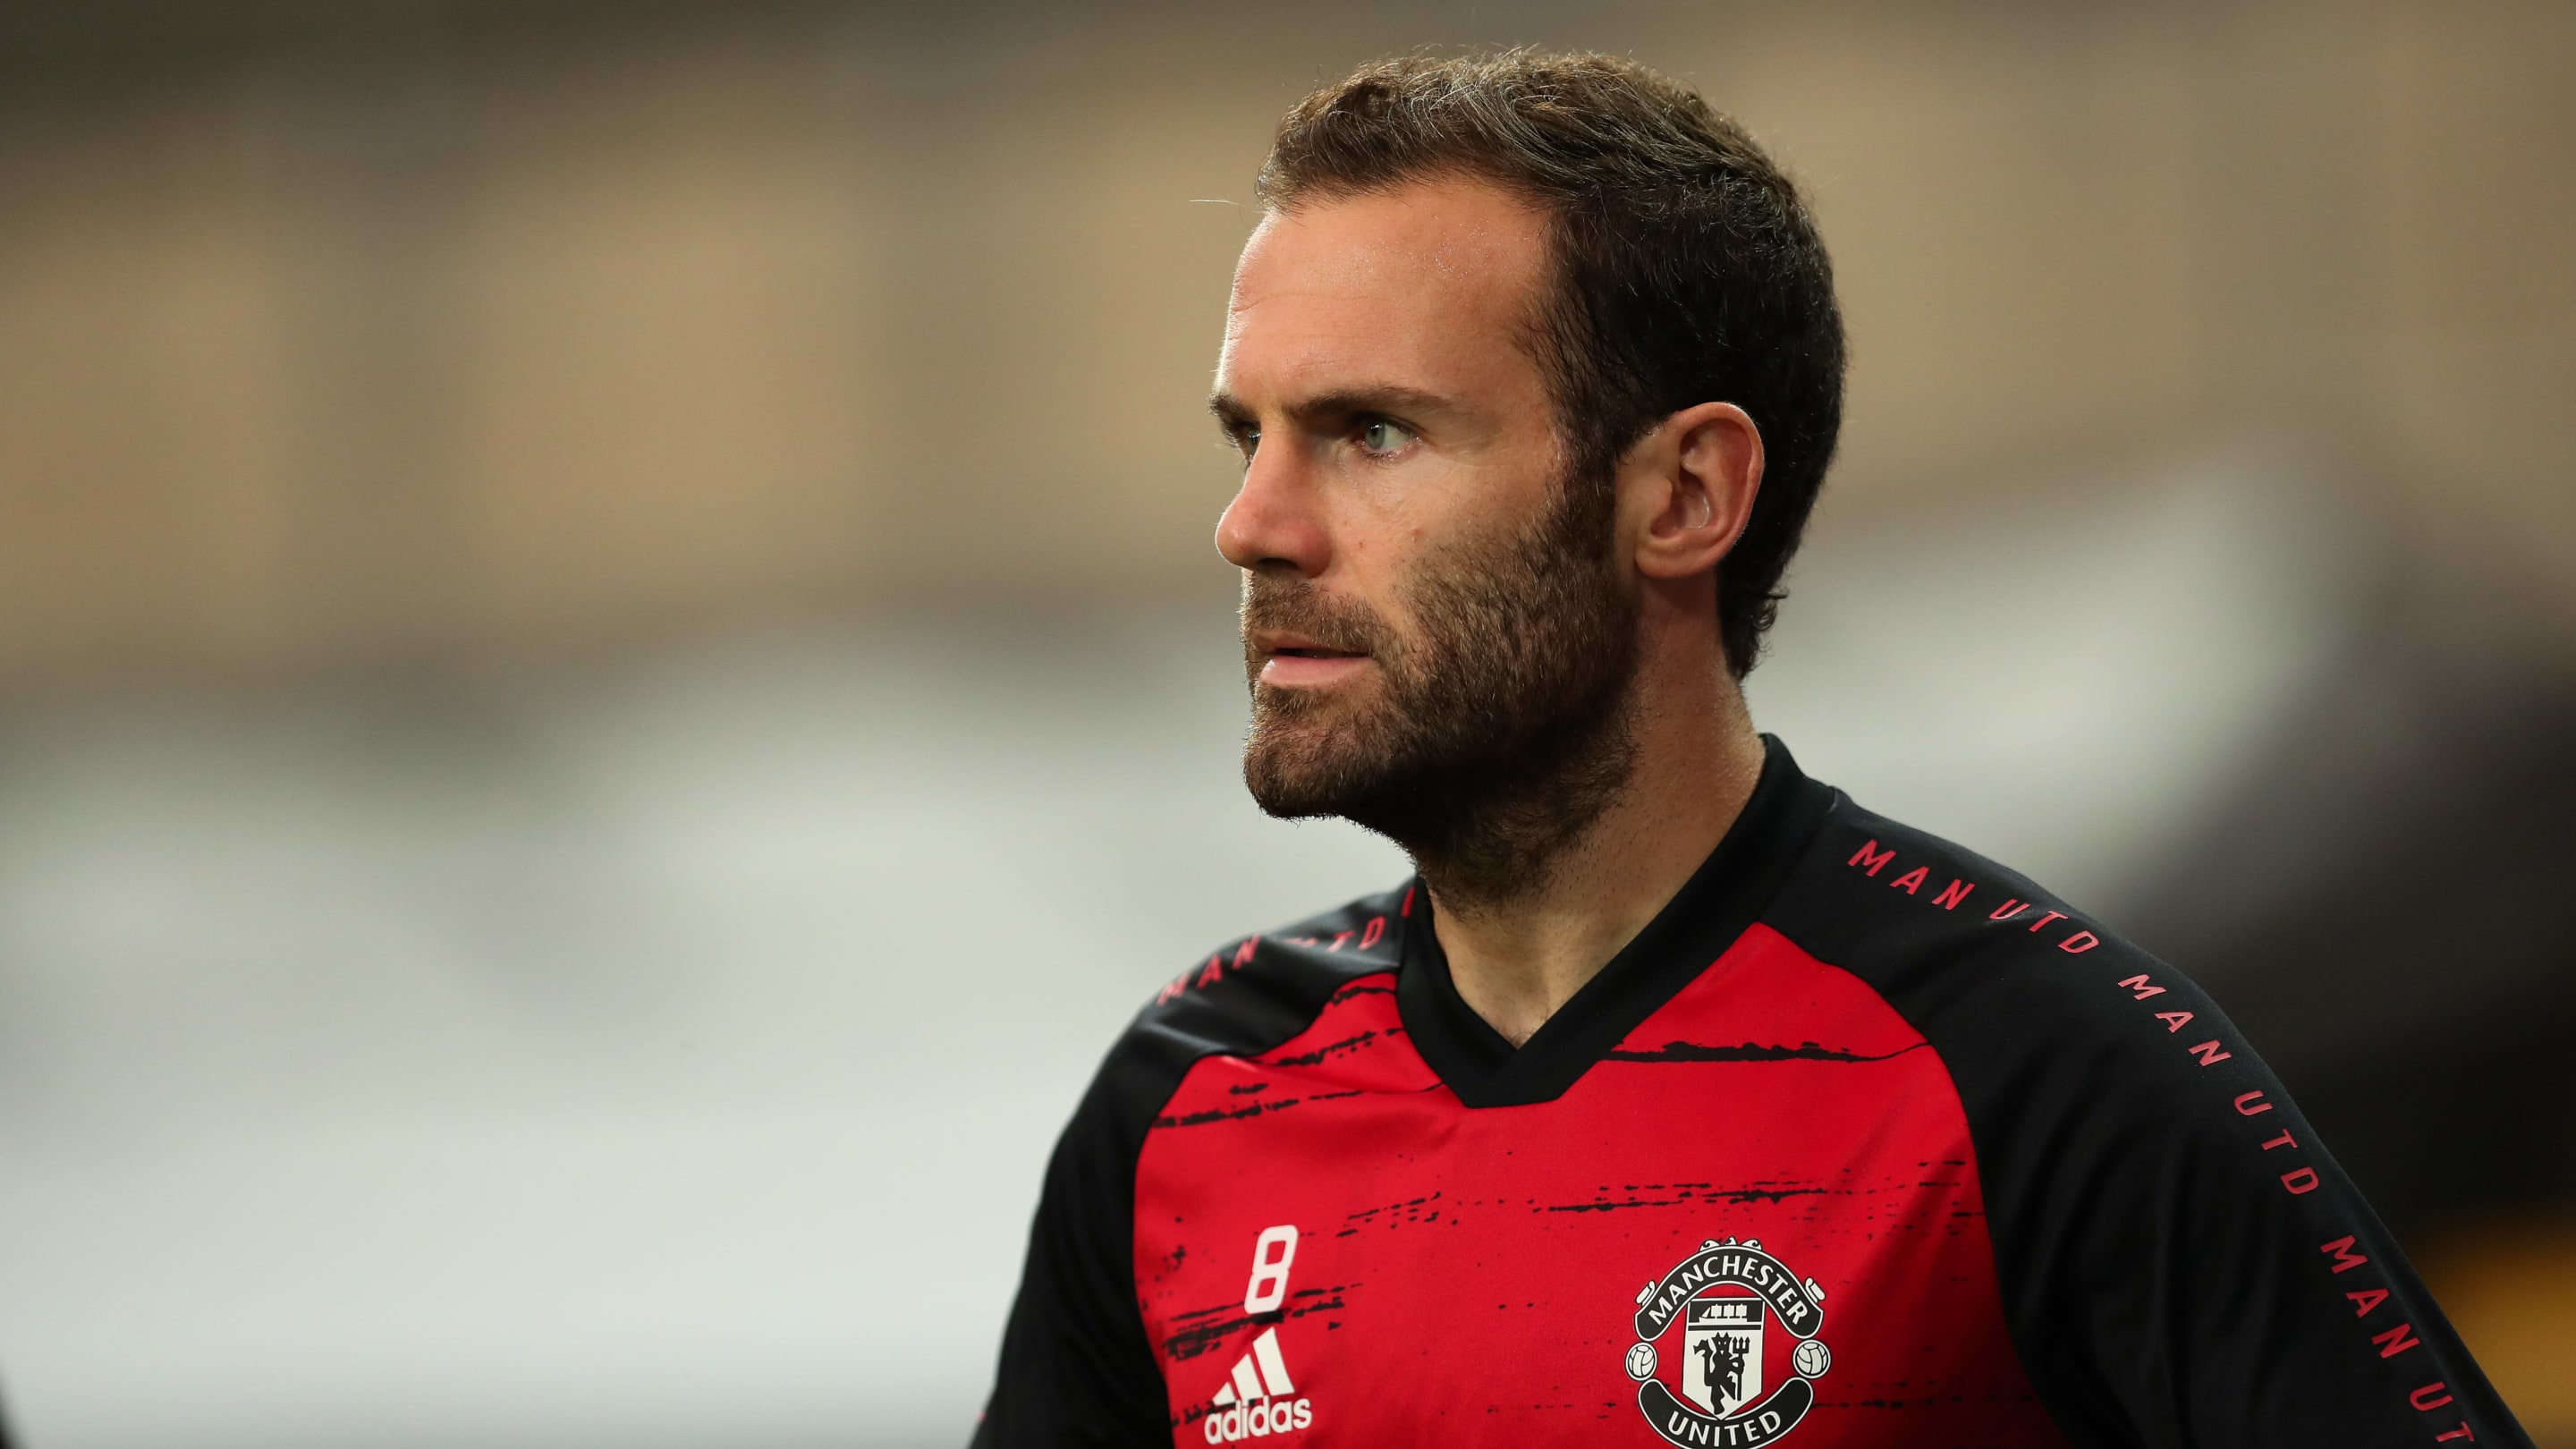 Juan Mata Turned Down Big-Money Offer to Stay at Manchester United